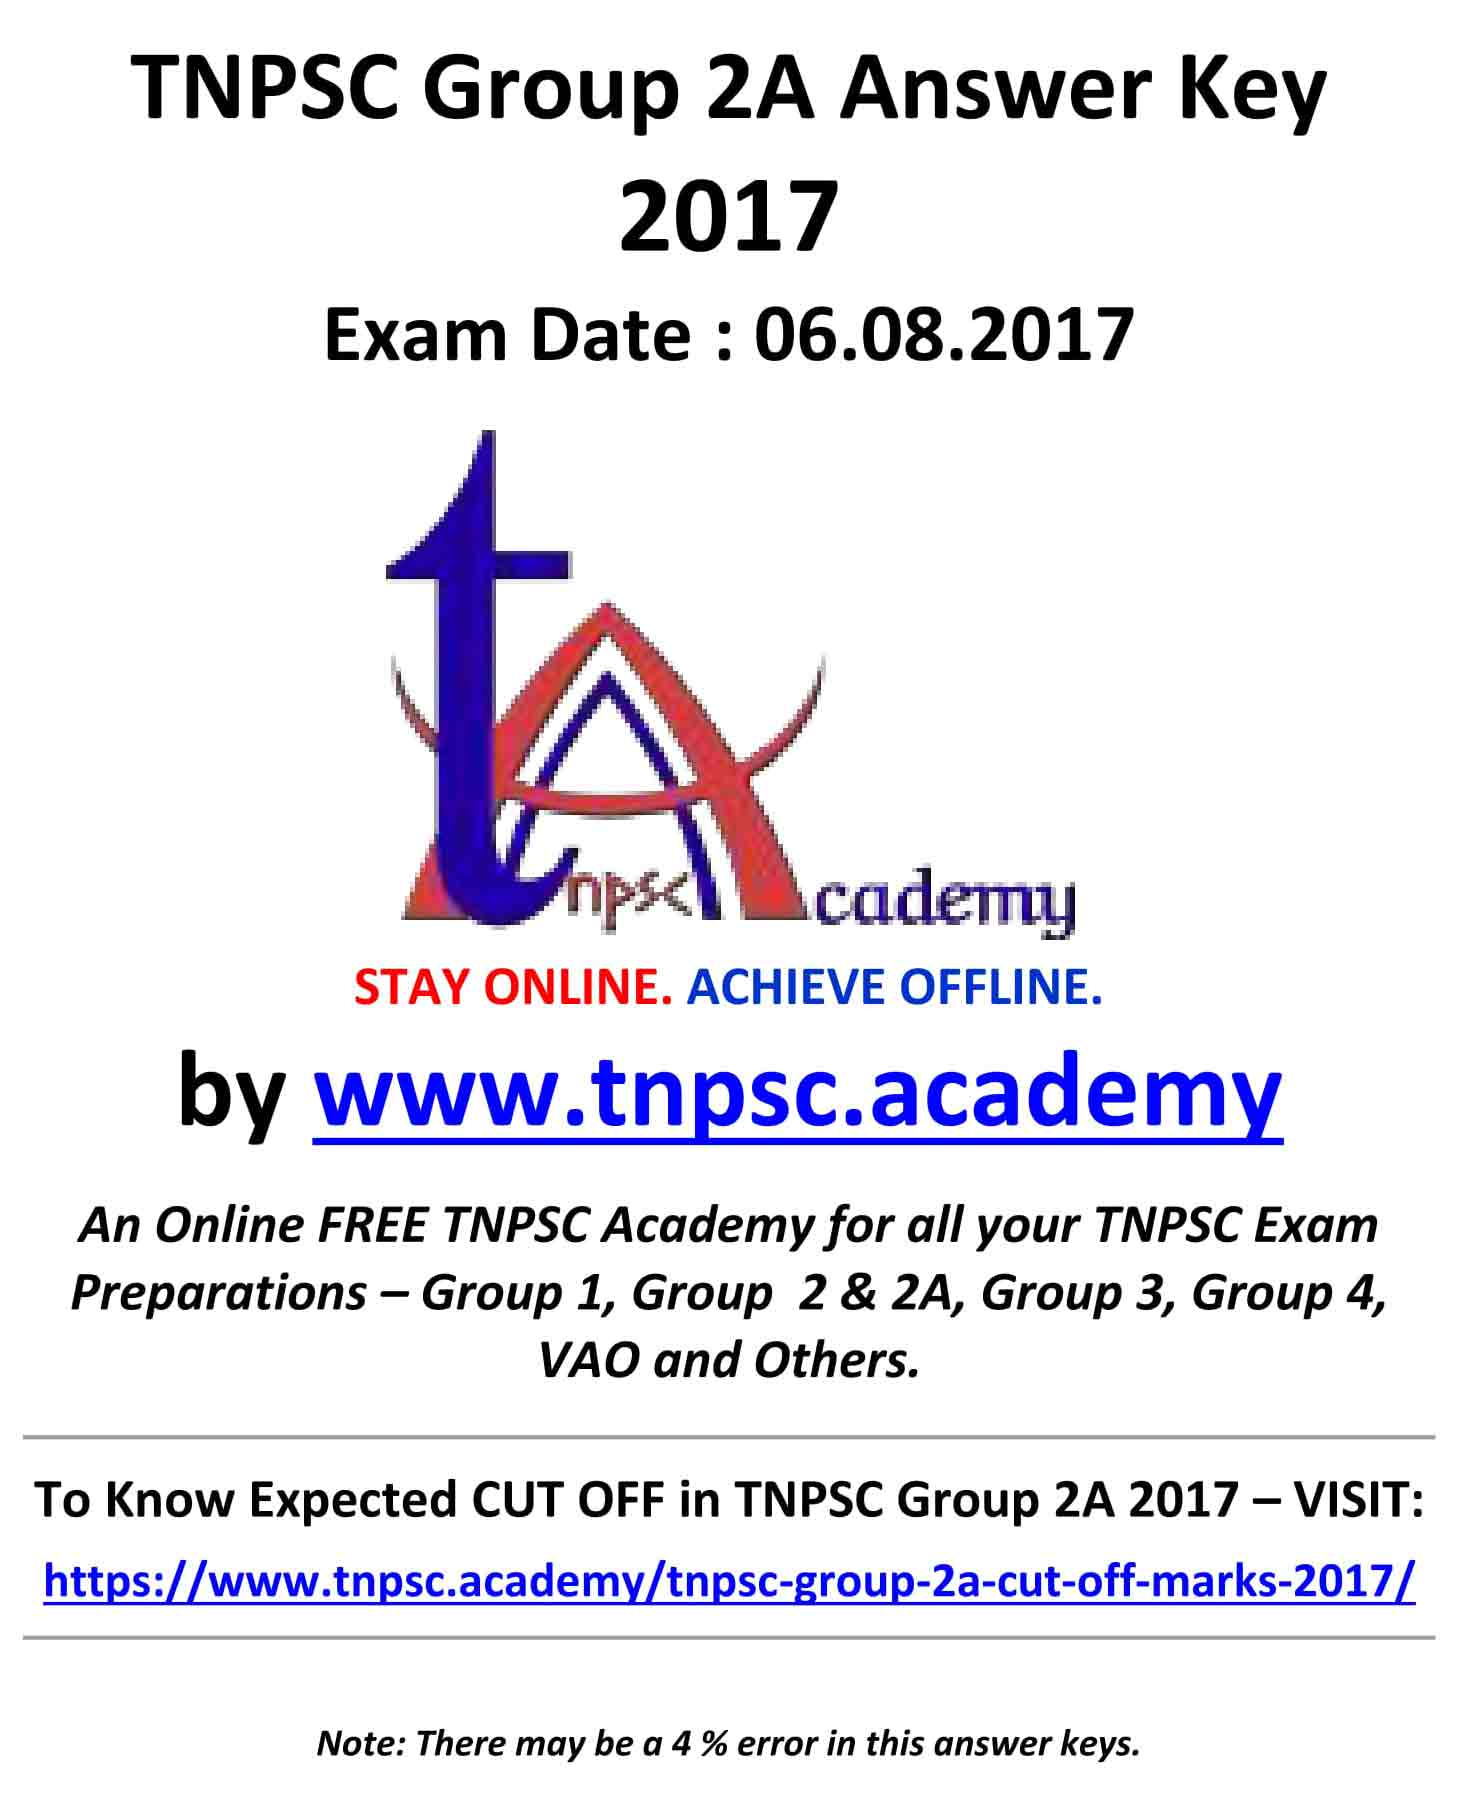 Group 2A Answer Key 2017